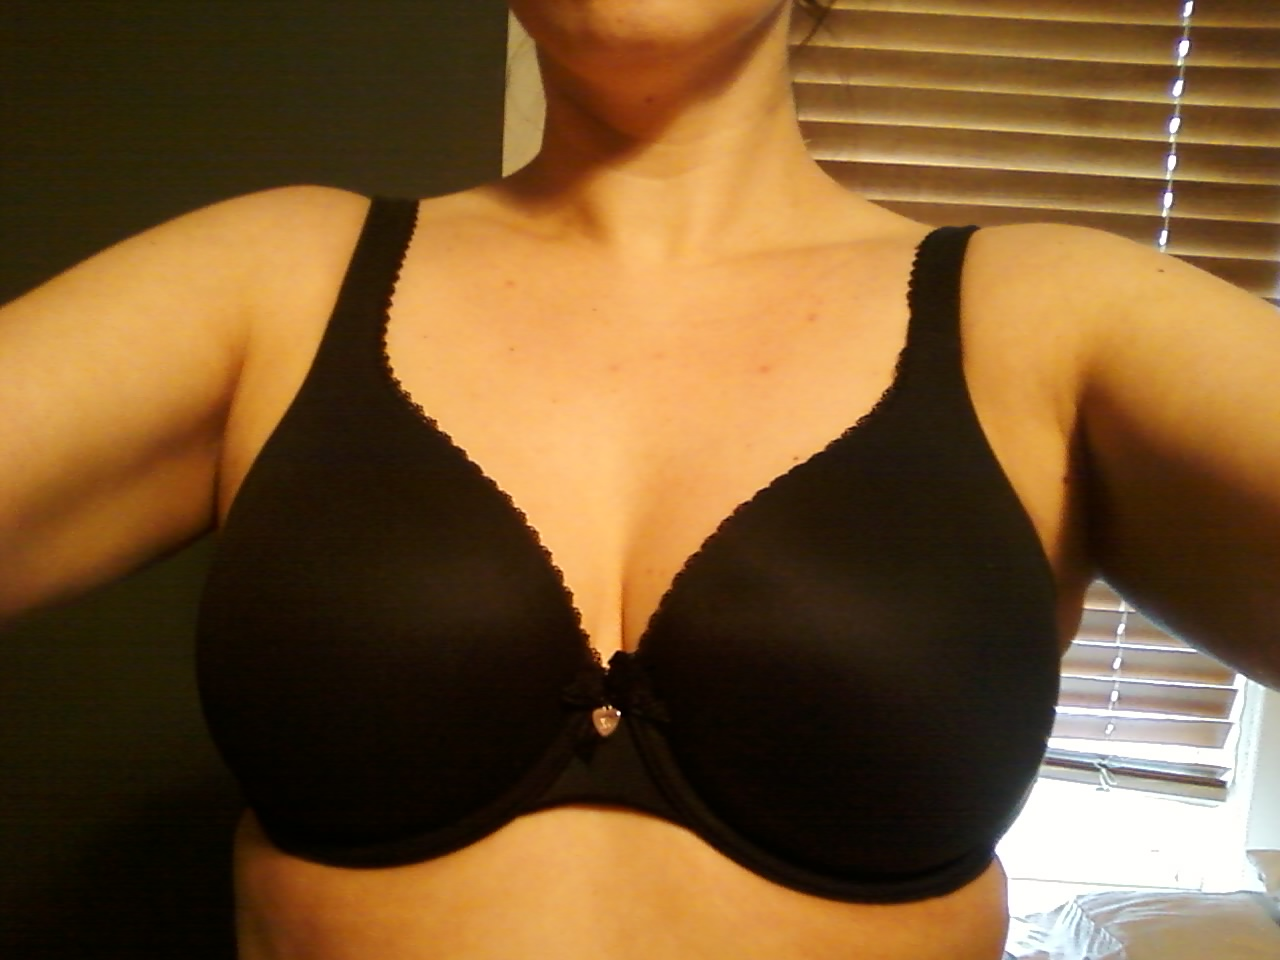 How Big is 36c Breast Size 36c Bra Size Big 13 Year Old a